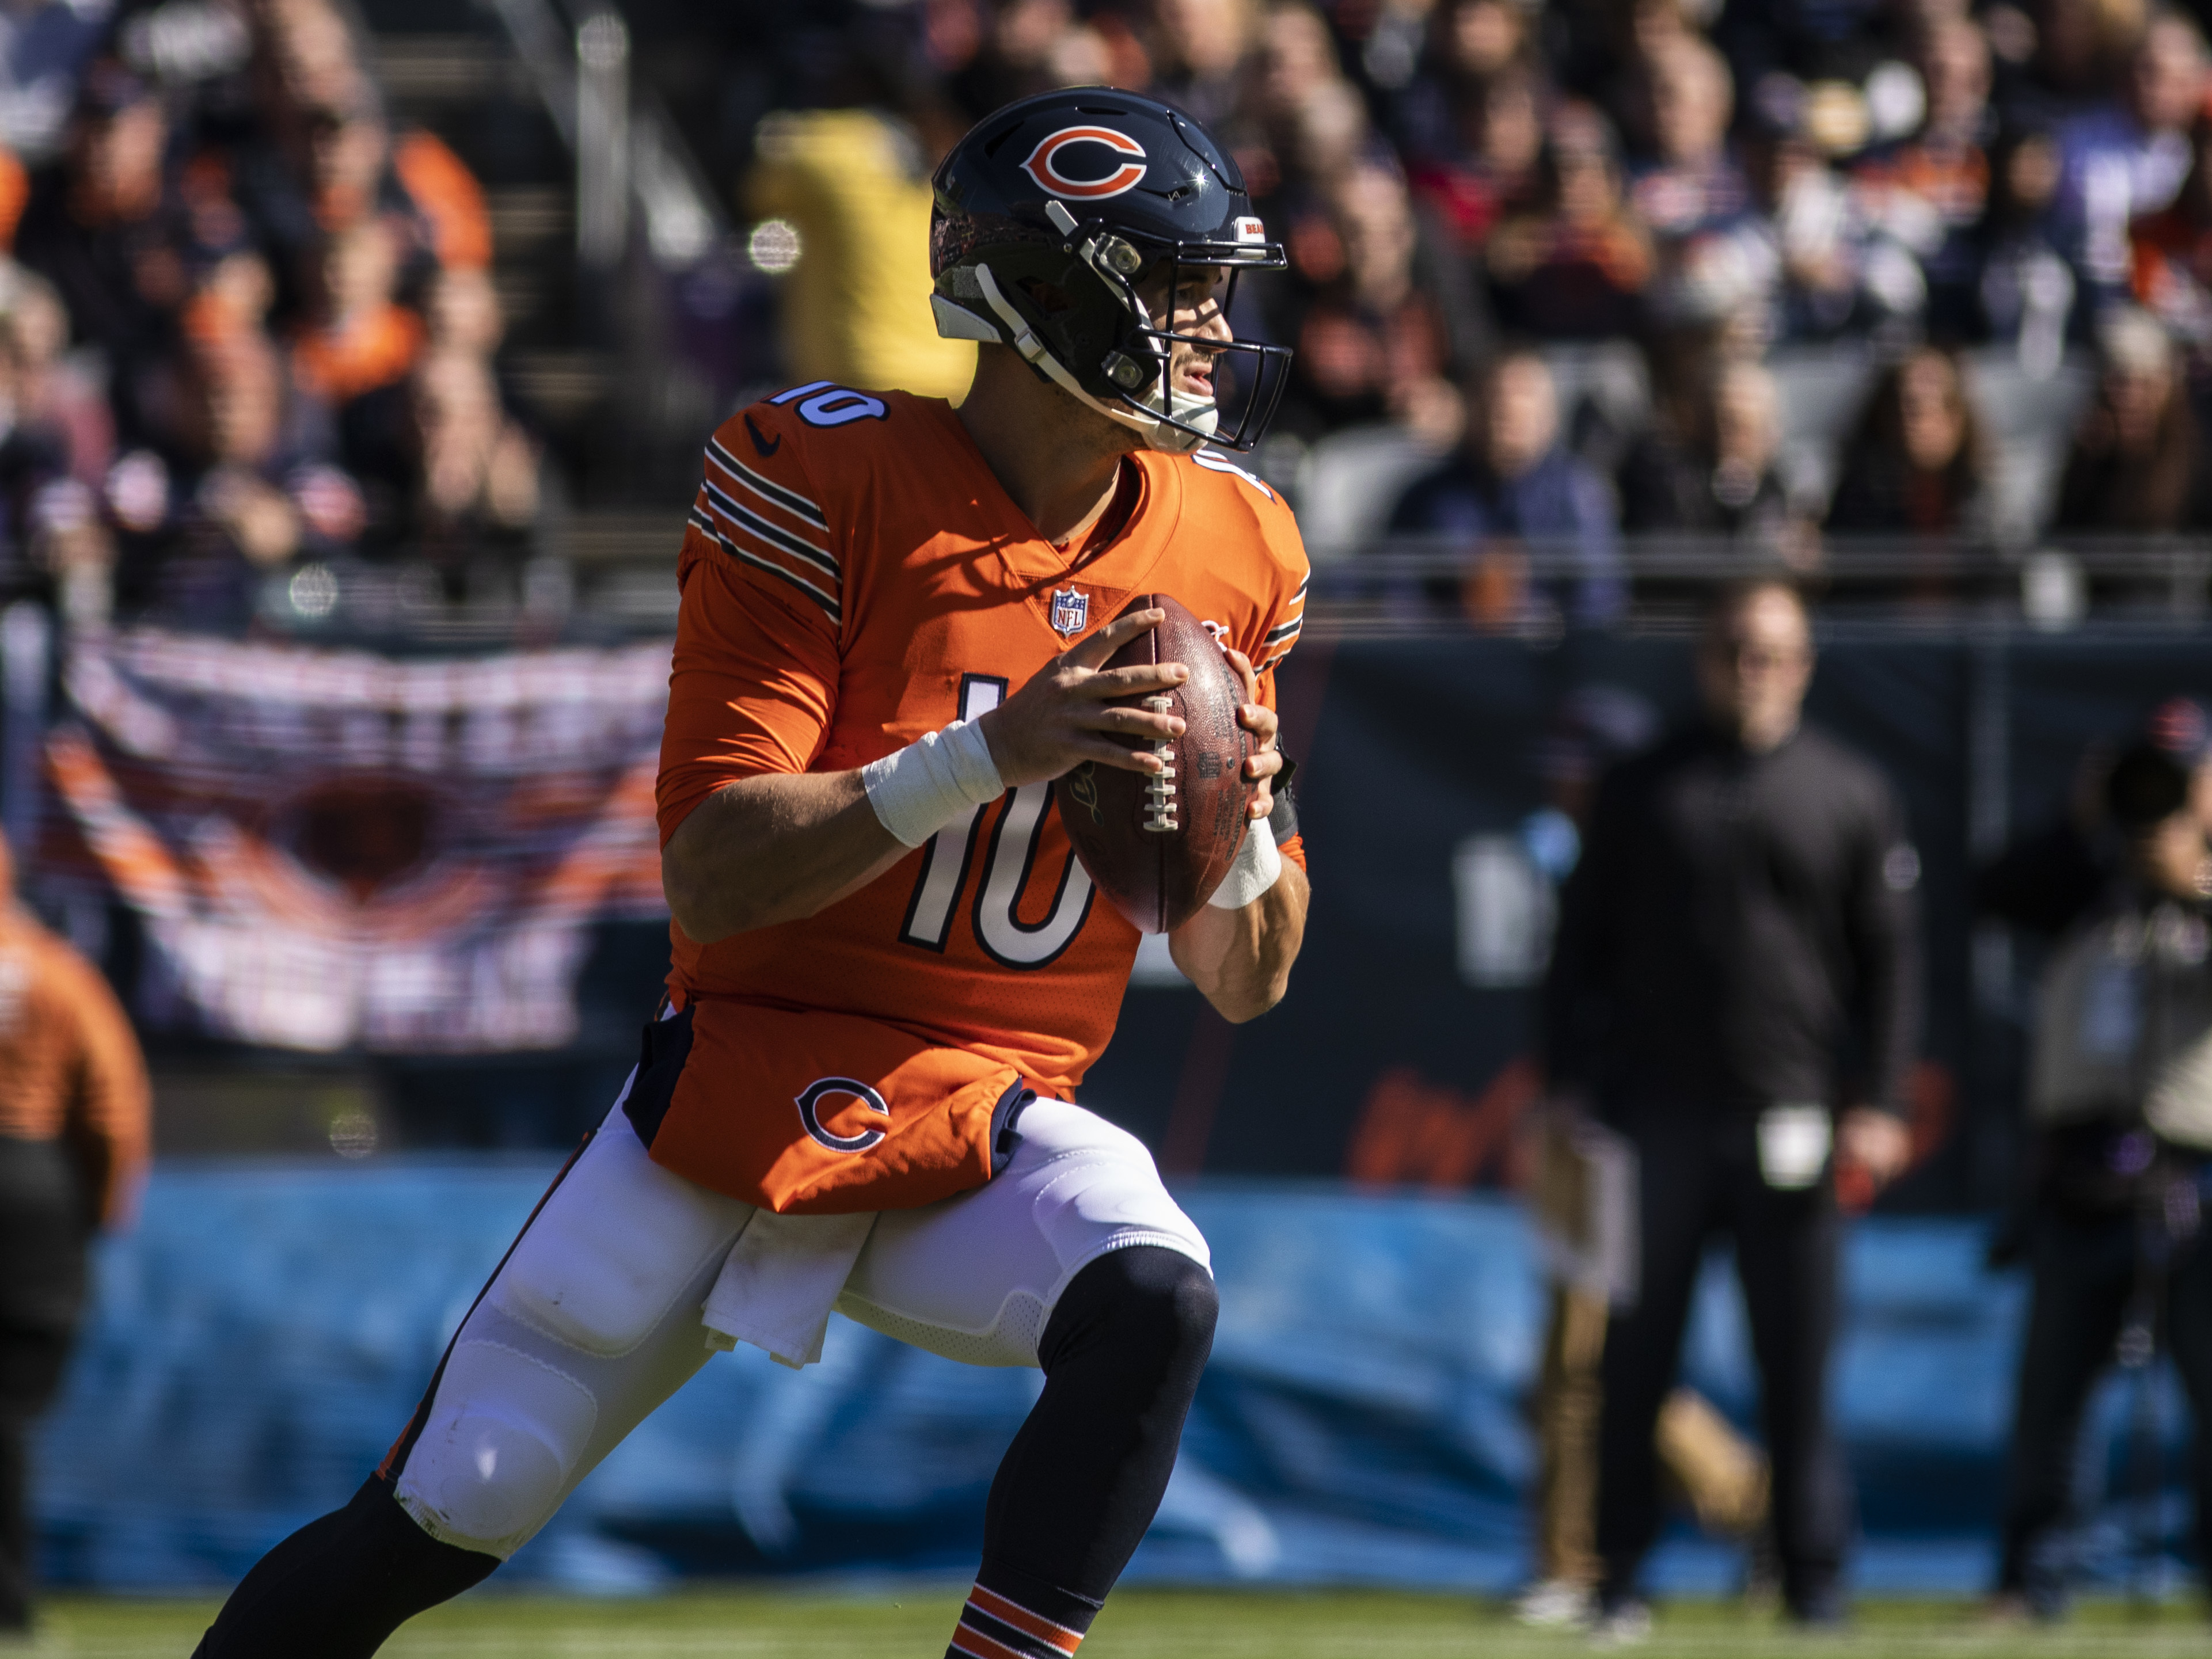 Bears quarterback Mitch Trubisky looks to throw the ball against the Los Angeles Chargers at Soldier Field on Oct. 27, 2019.